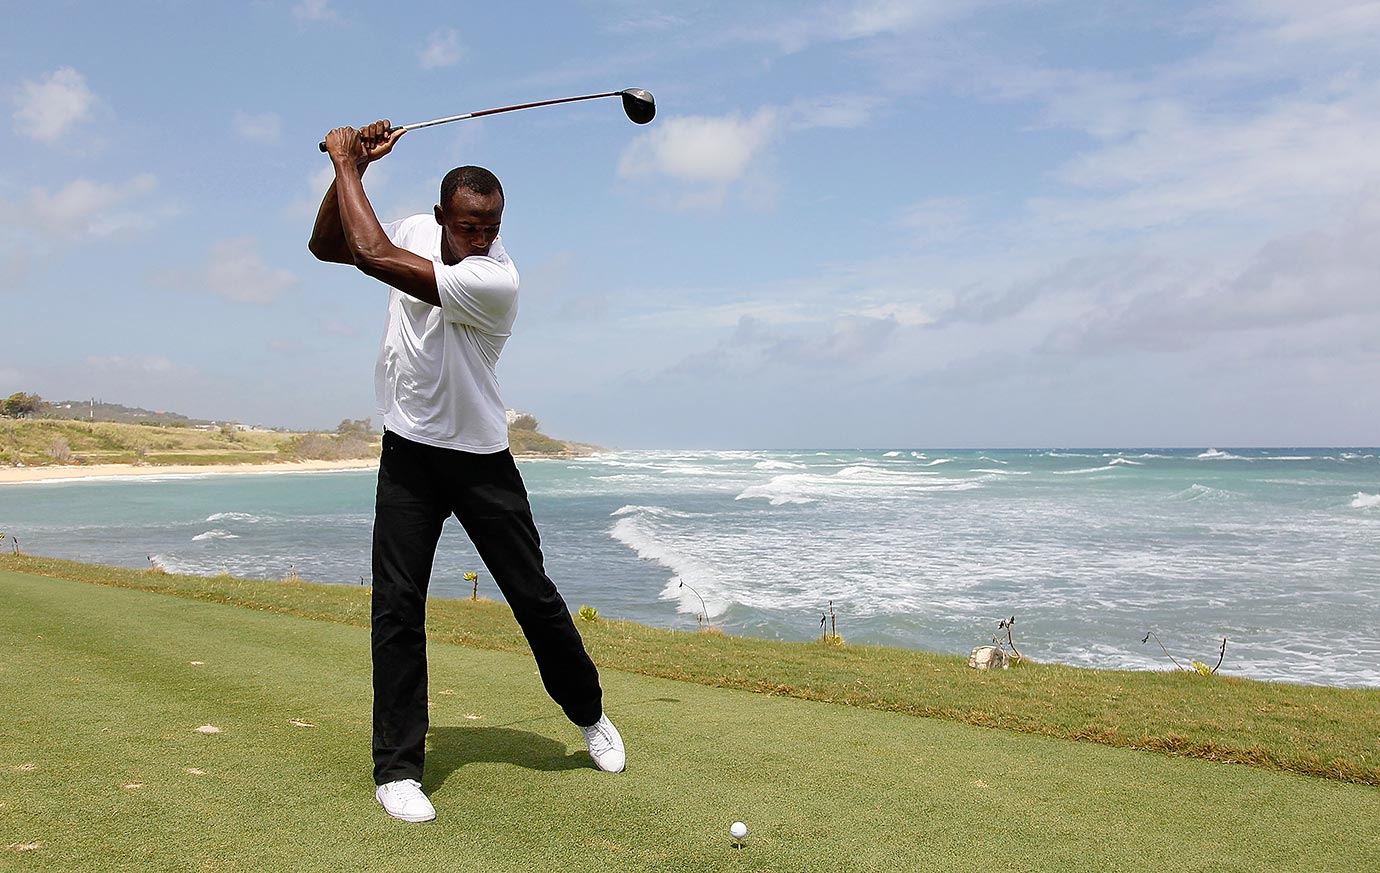 Bolt goofs off by teeing off into the Caribbean Sea during the quarterfinal matches of The Mojo 6 Jamaica LPGA Invitational in Montego Bay.